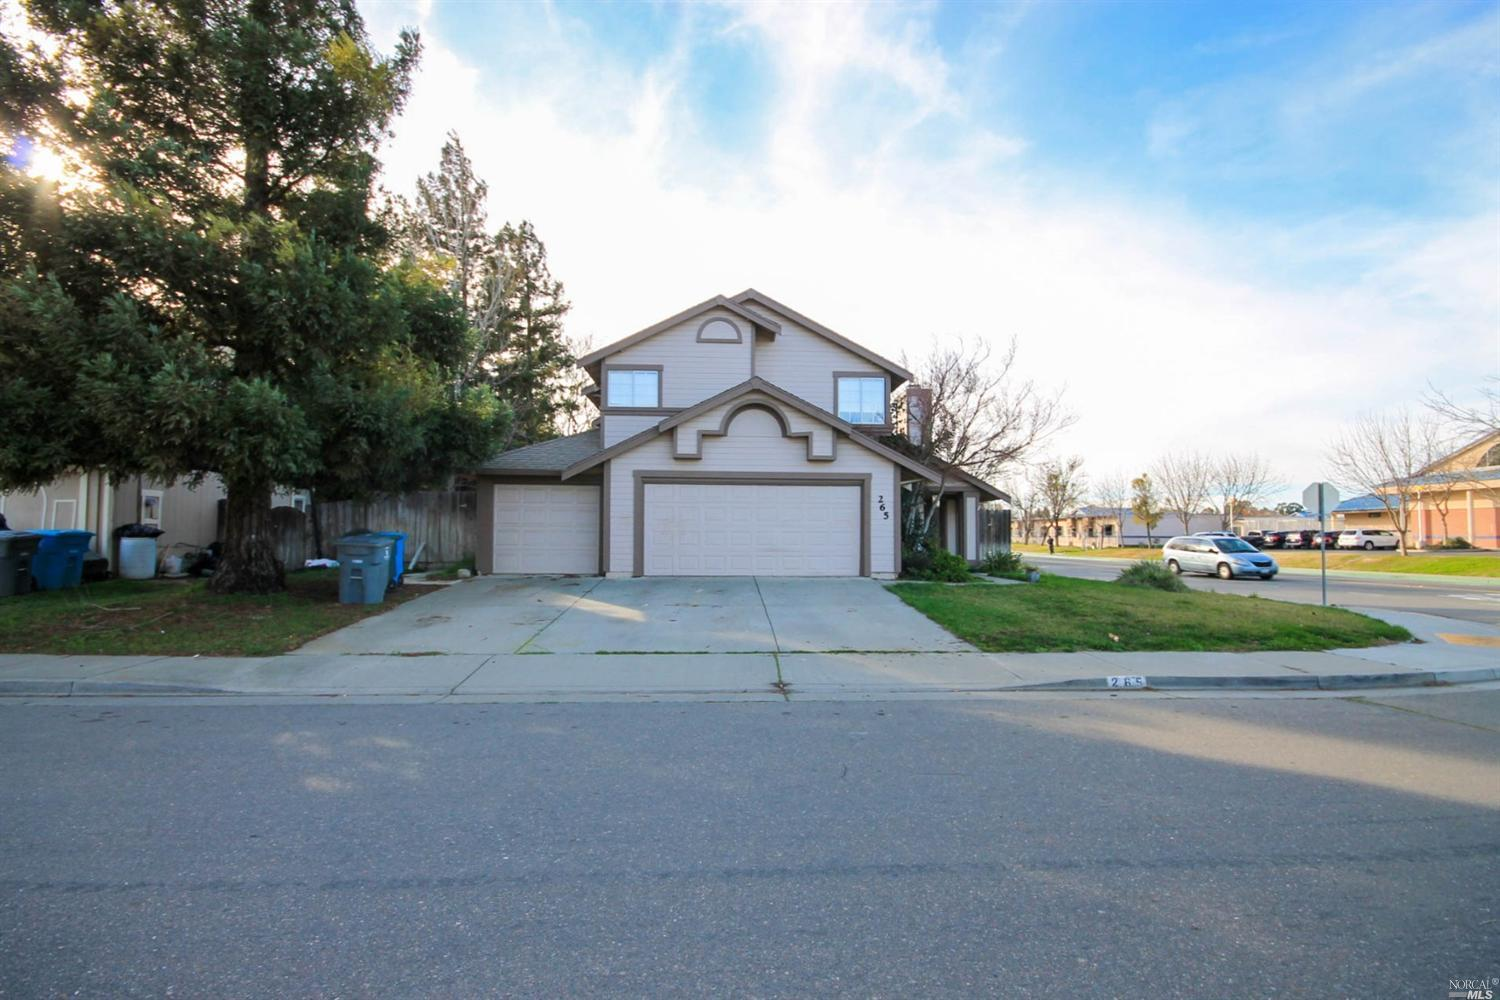 265 Bowen Lane, Dixon, California 95620